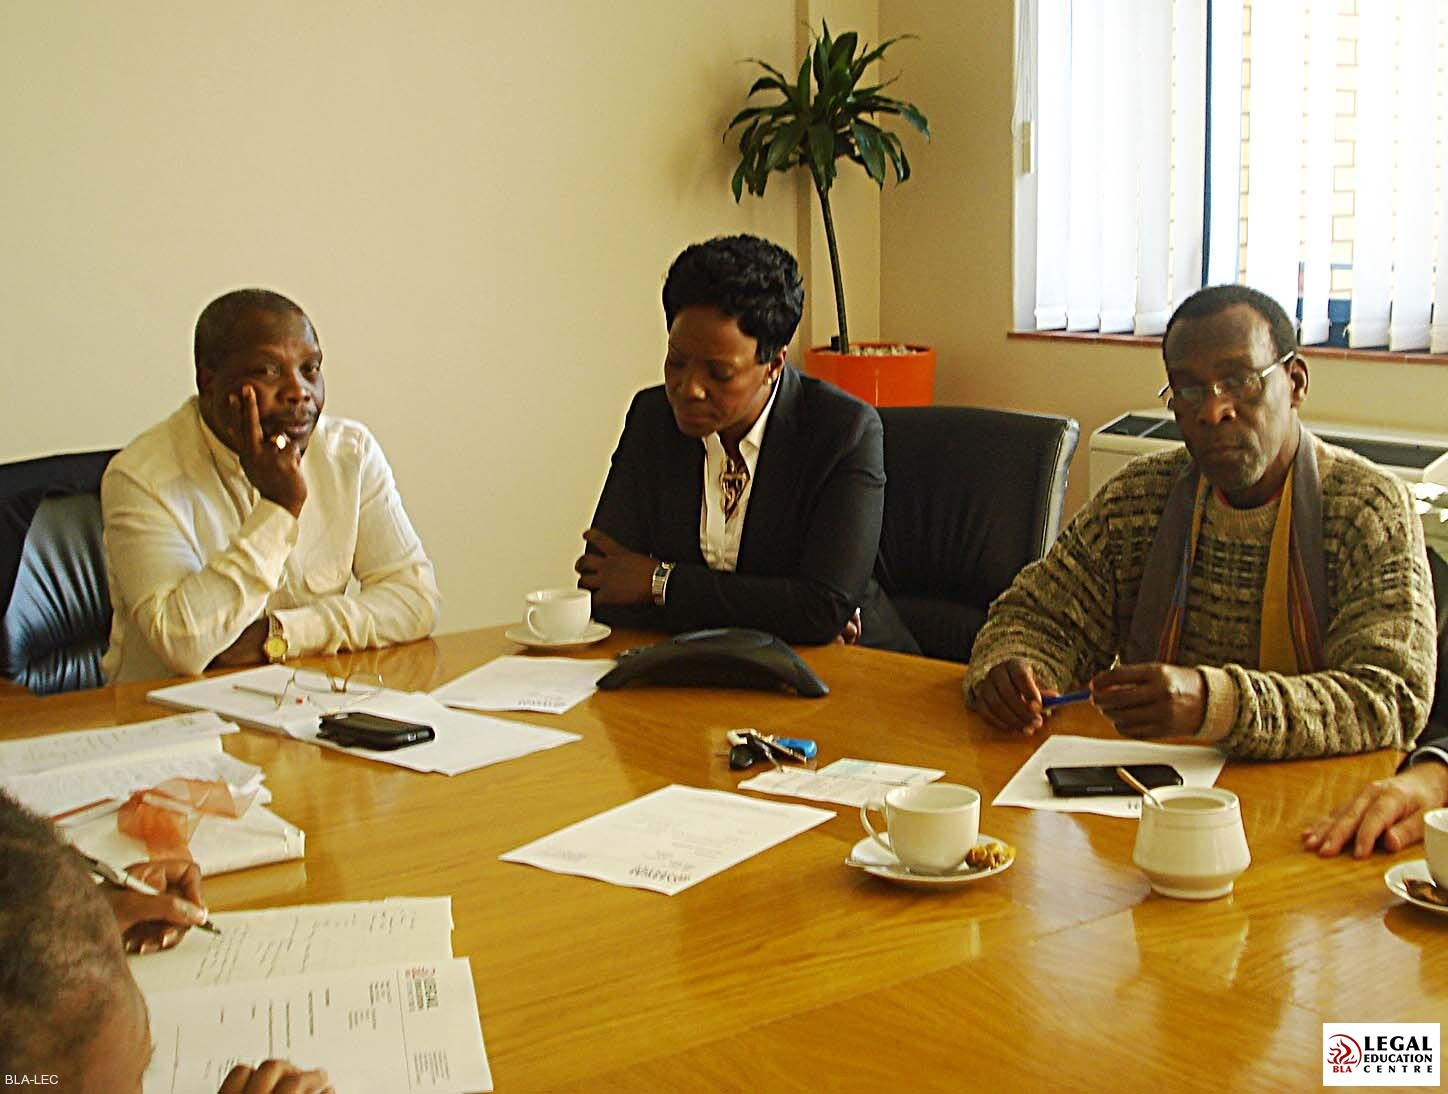 Image from sessions intended to provide staff with an opportunity to interact and exchange views with various experts or leaders in their field.